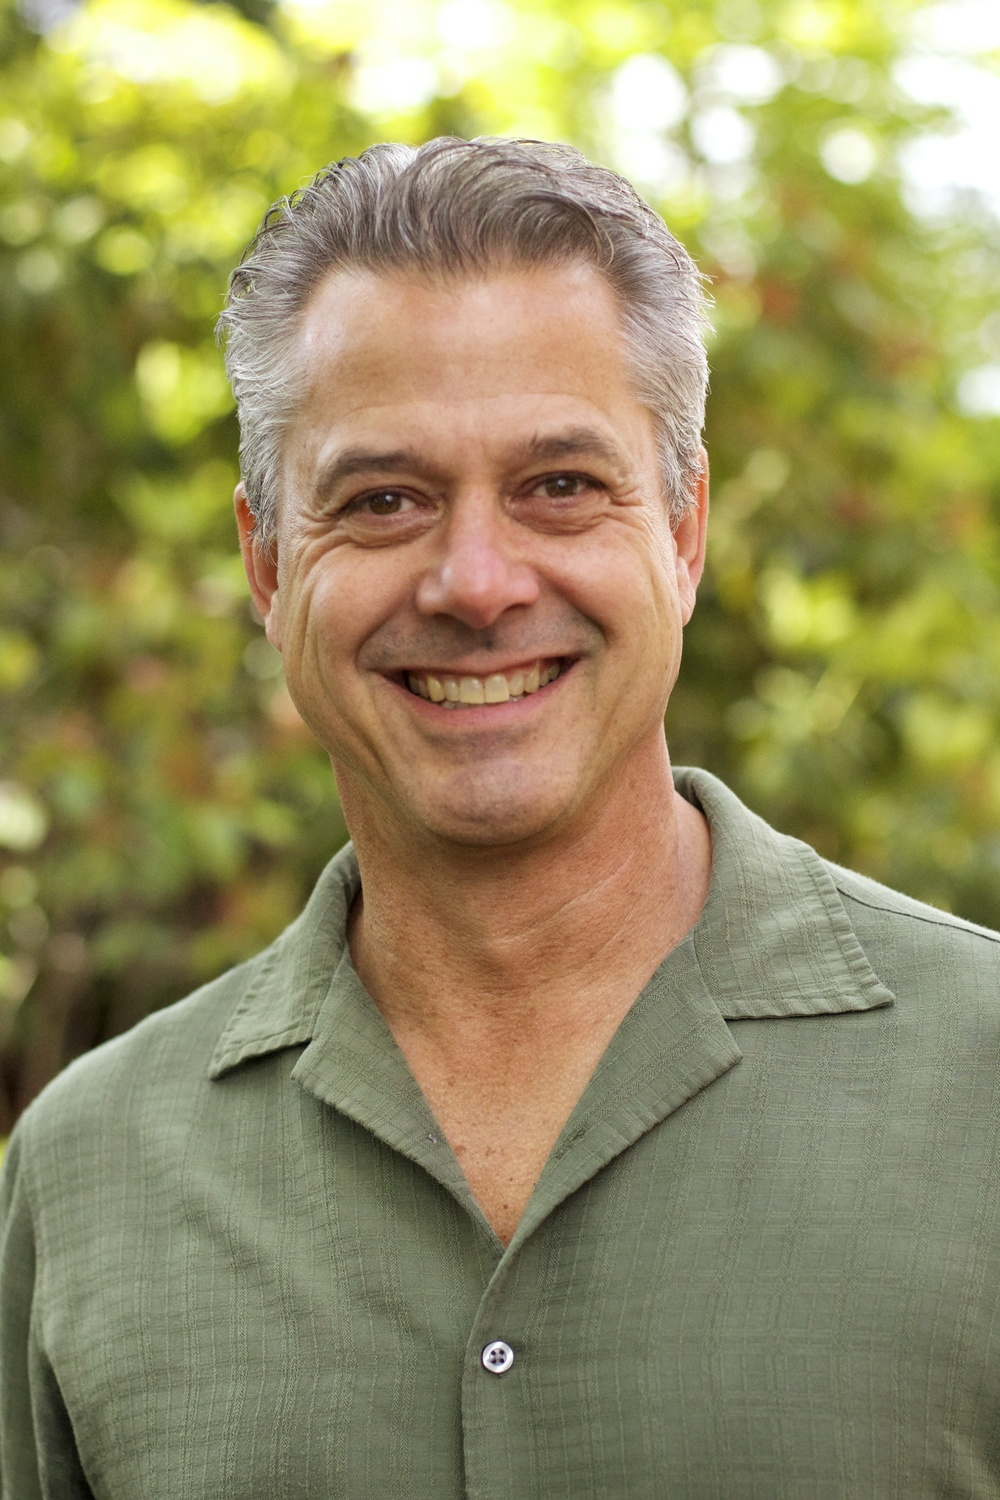 Jeff Roth, MA, LMHC, therapist    ∙ Adolescents & Adults ∙  Anxiety  ∙  Depression  ∙  Anger Management  ∙  Mild to Moderate Substance Abuse  ∙  Life Transitions  ∙  Existential Crises- Meaning/Purpose of Life  ∙  Grief and Loss  ∙  Spirituality  ∙  Music and creativity